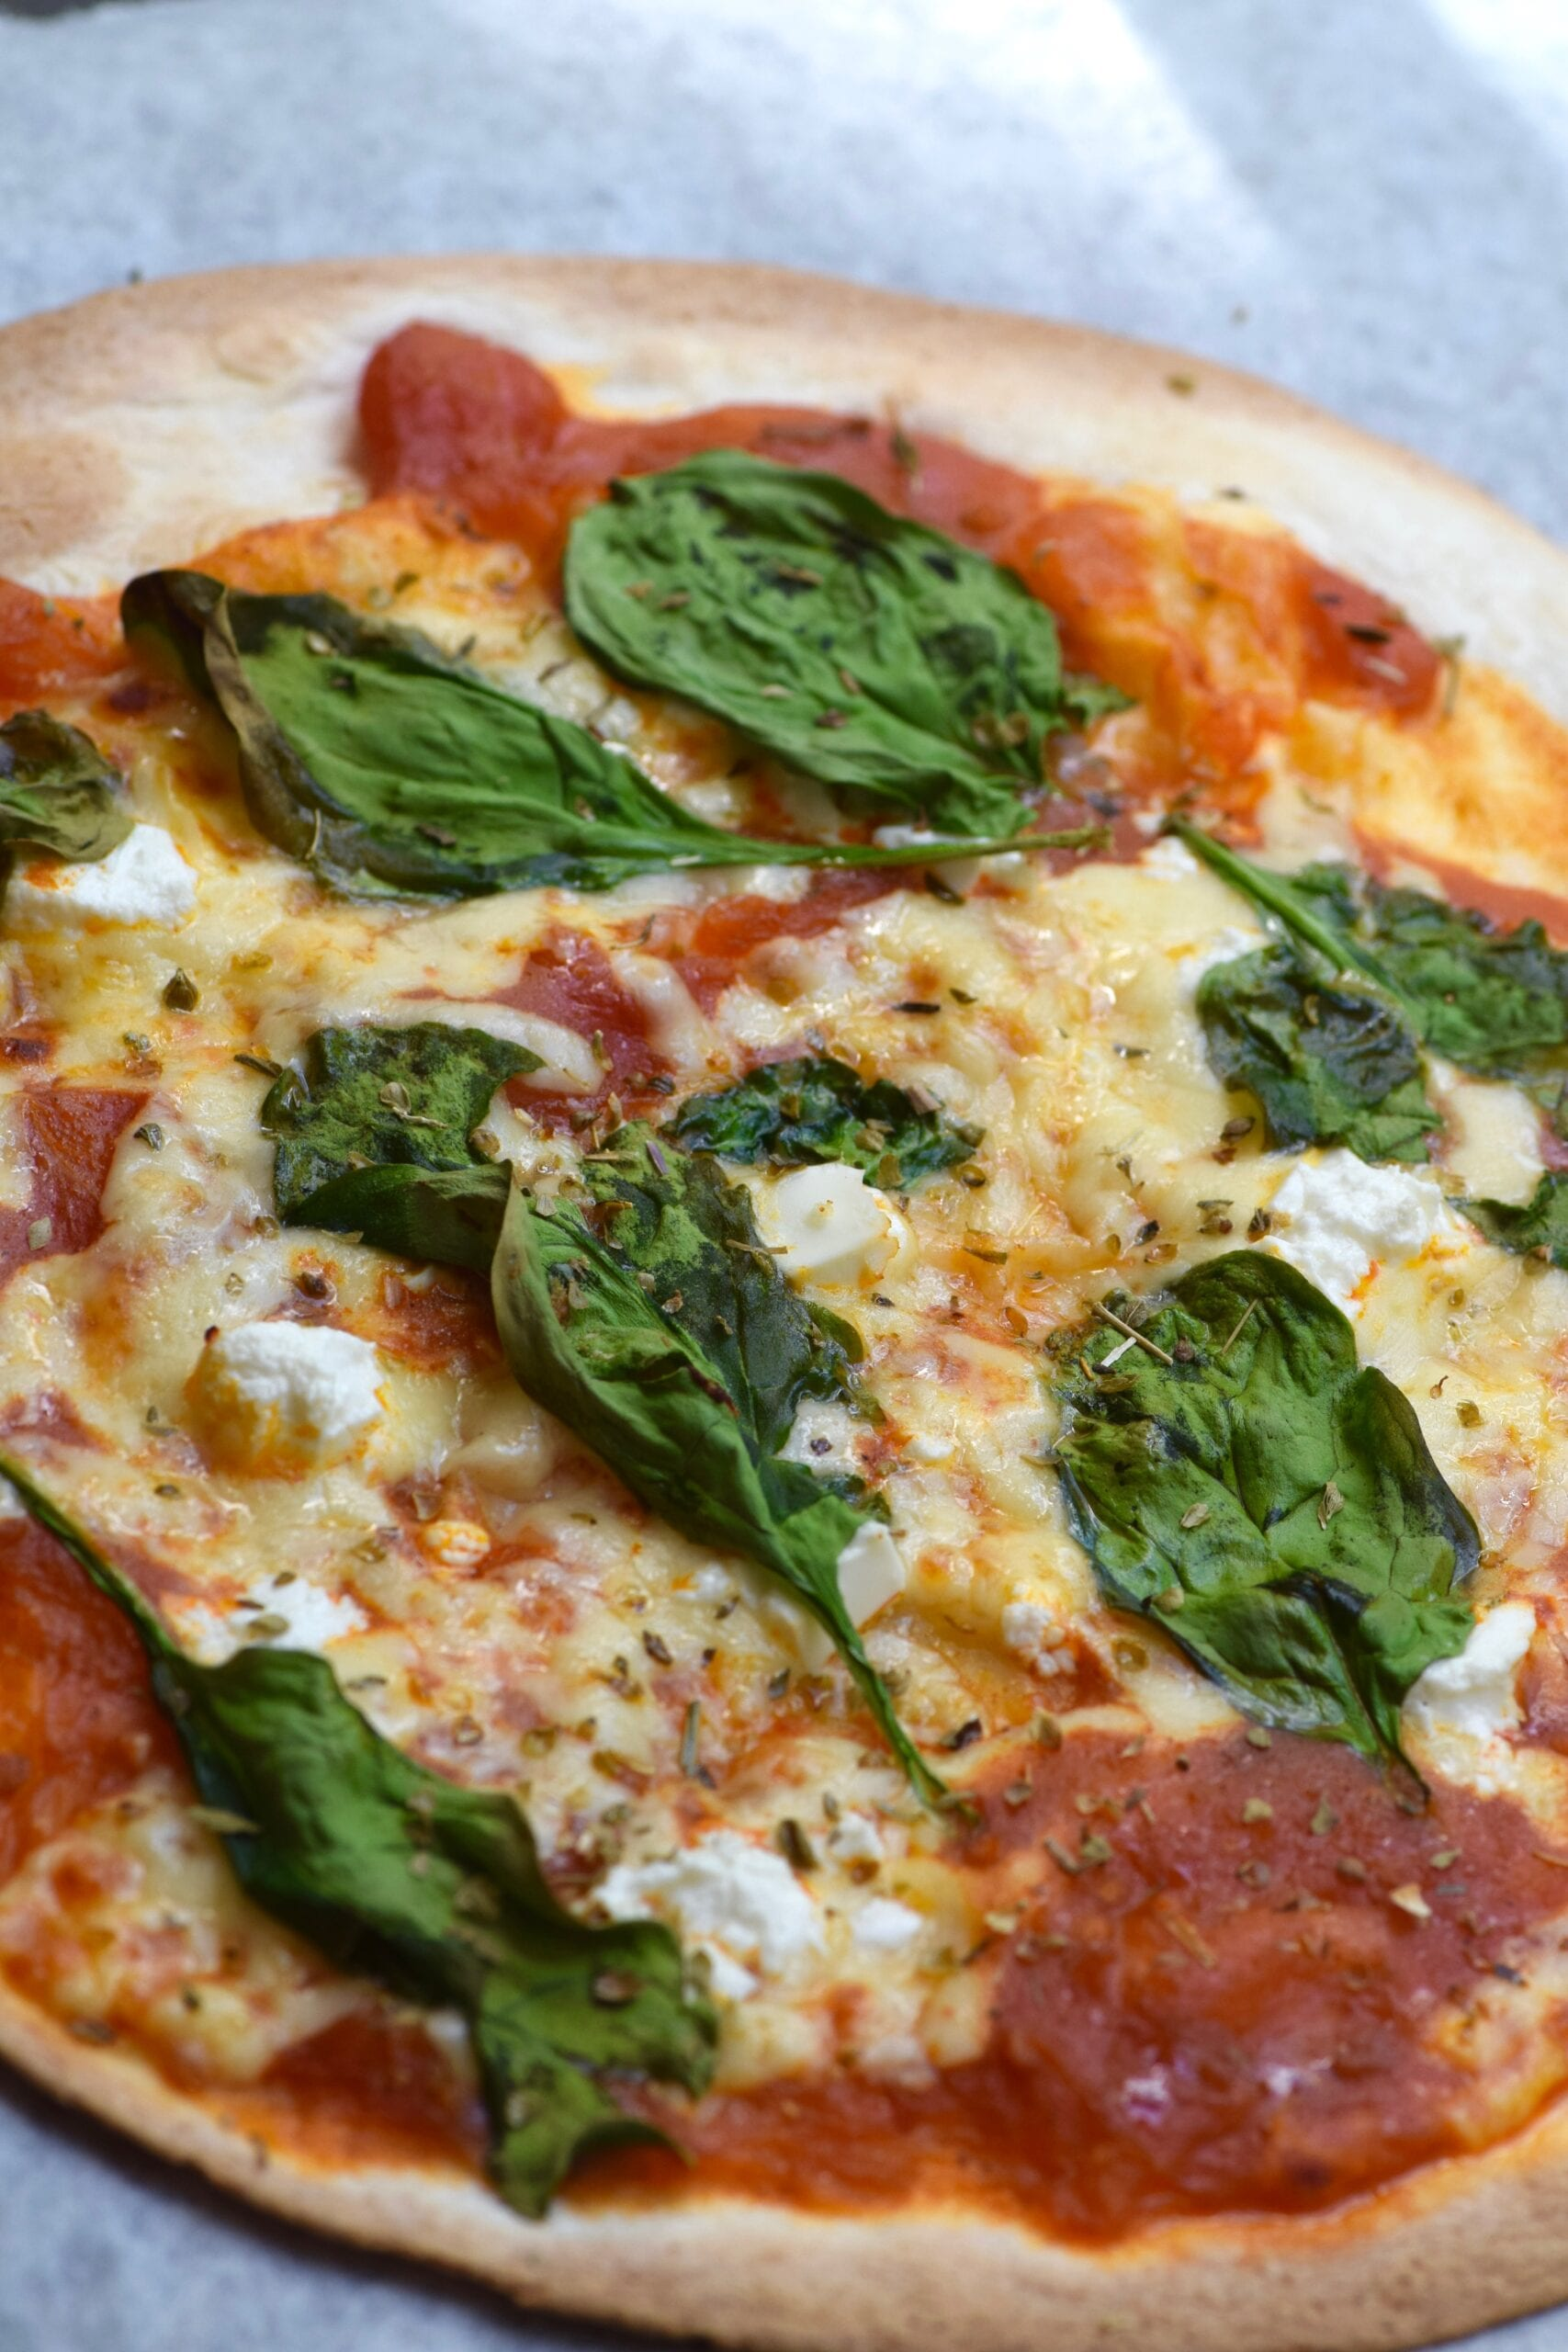 Low calorie spinach and feta pizza straight from the oven